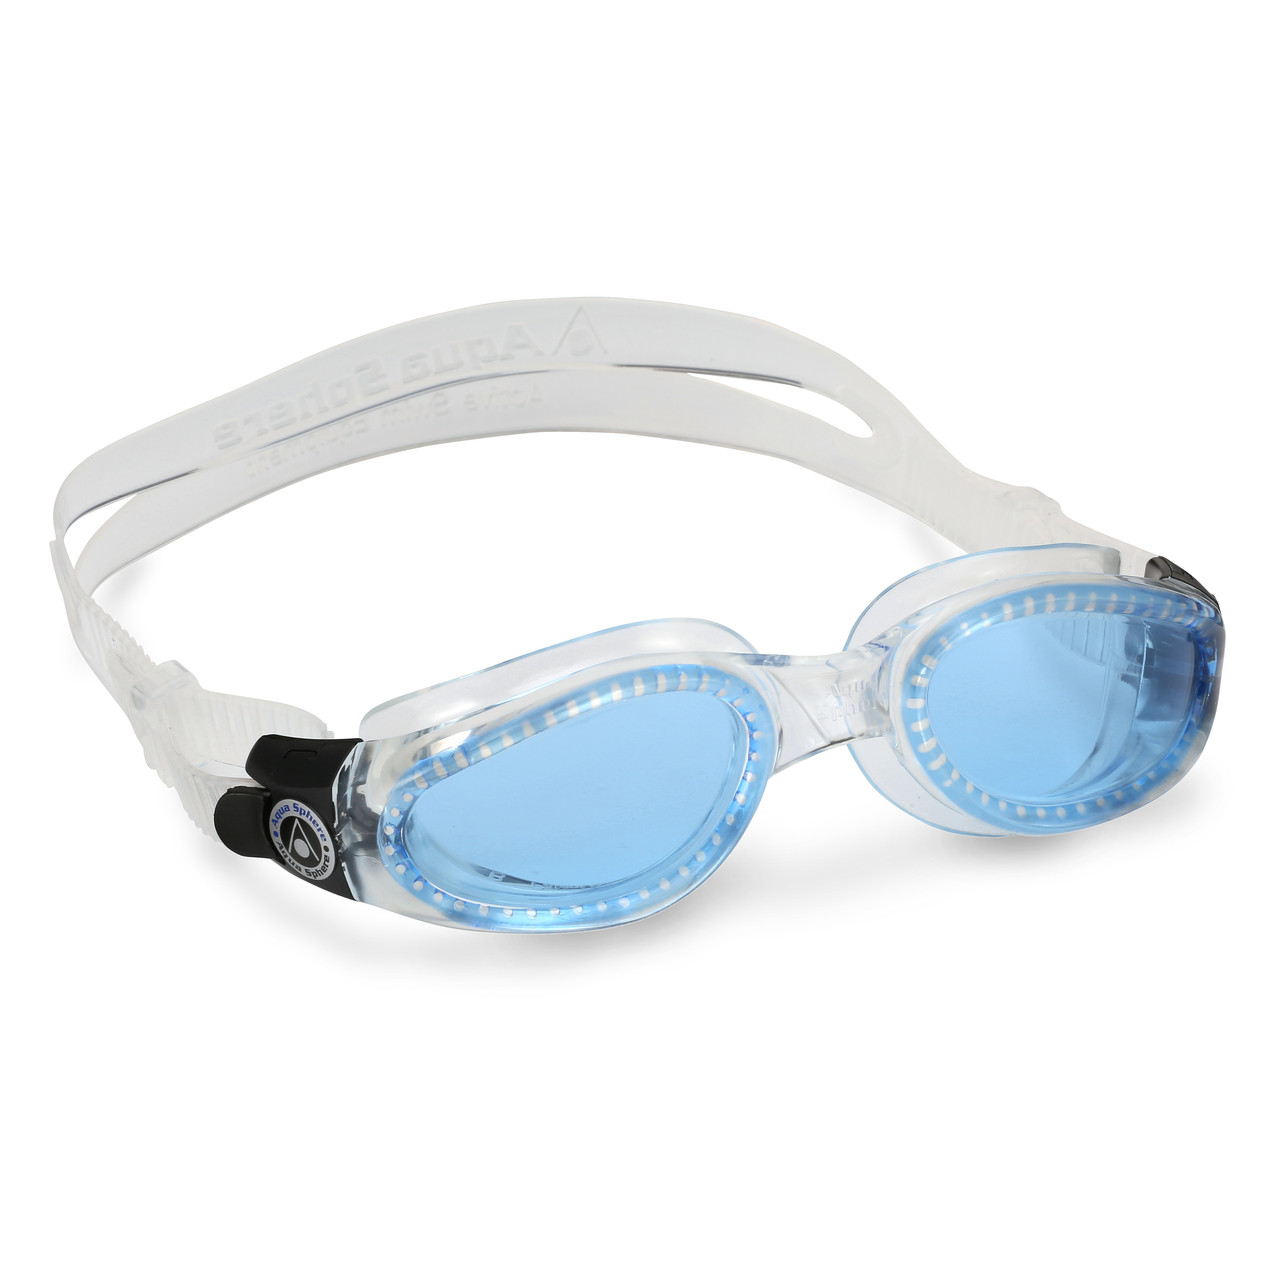 dbf79d30ad Aqua Sphere Kaiman Swim Goggles With Blue Lenses